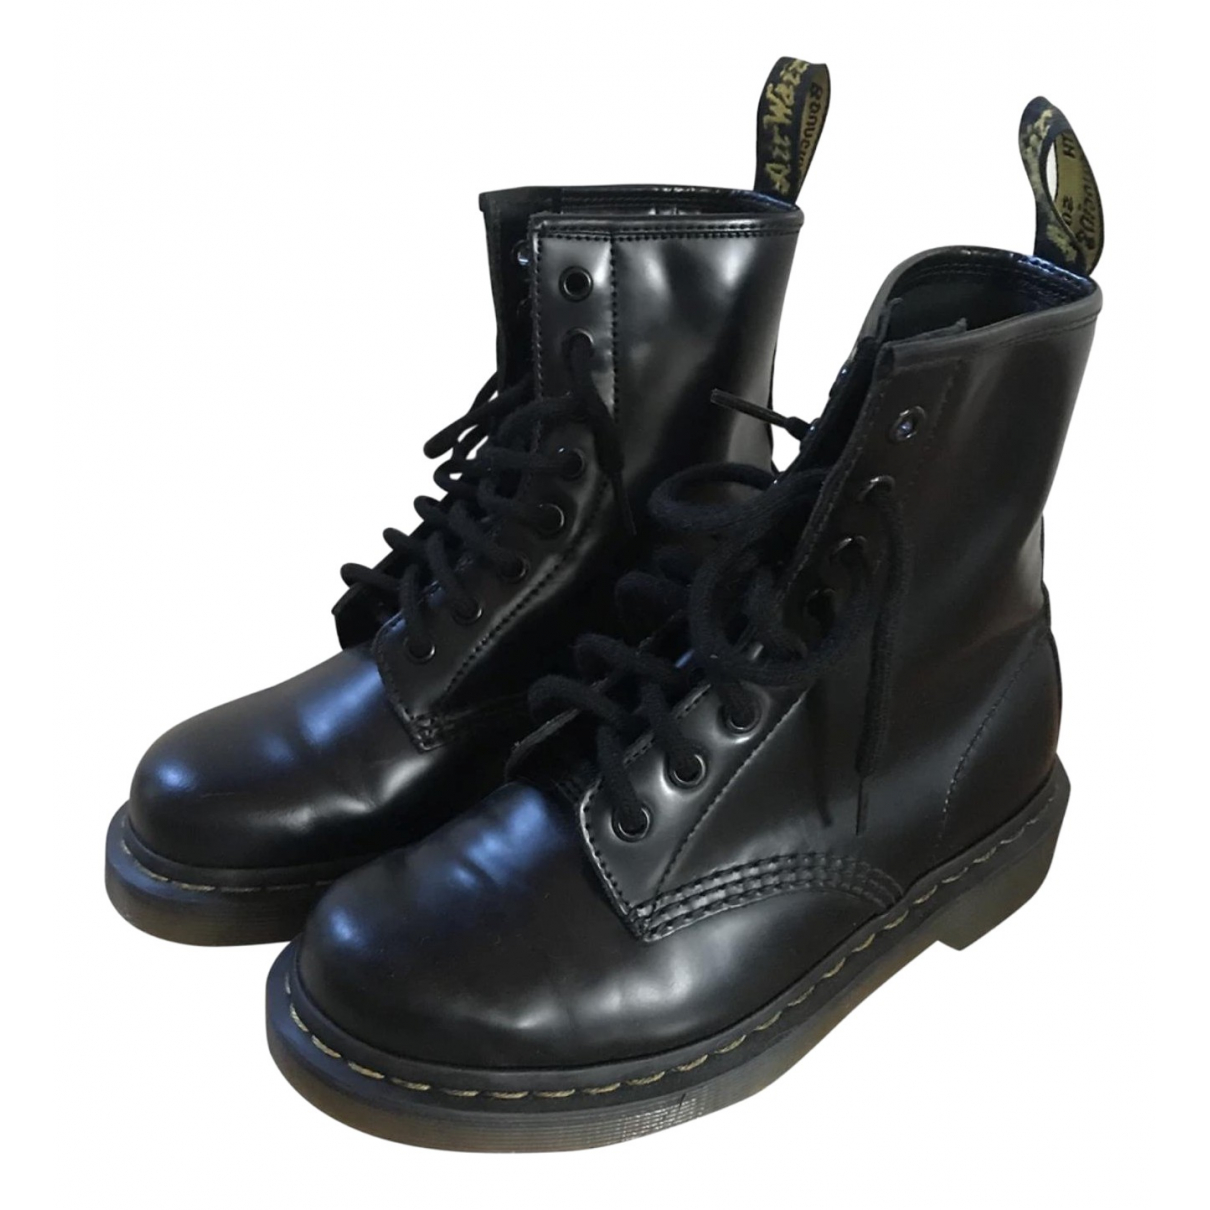 Dr. Martens 1460 Pascal (8 eye) Black Leather Boots for Women 36 EU